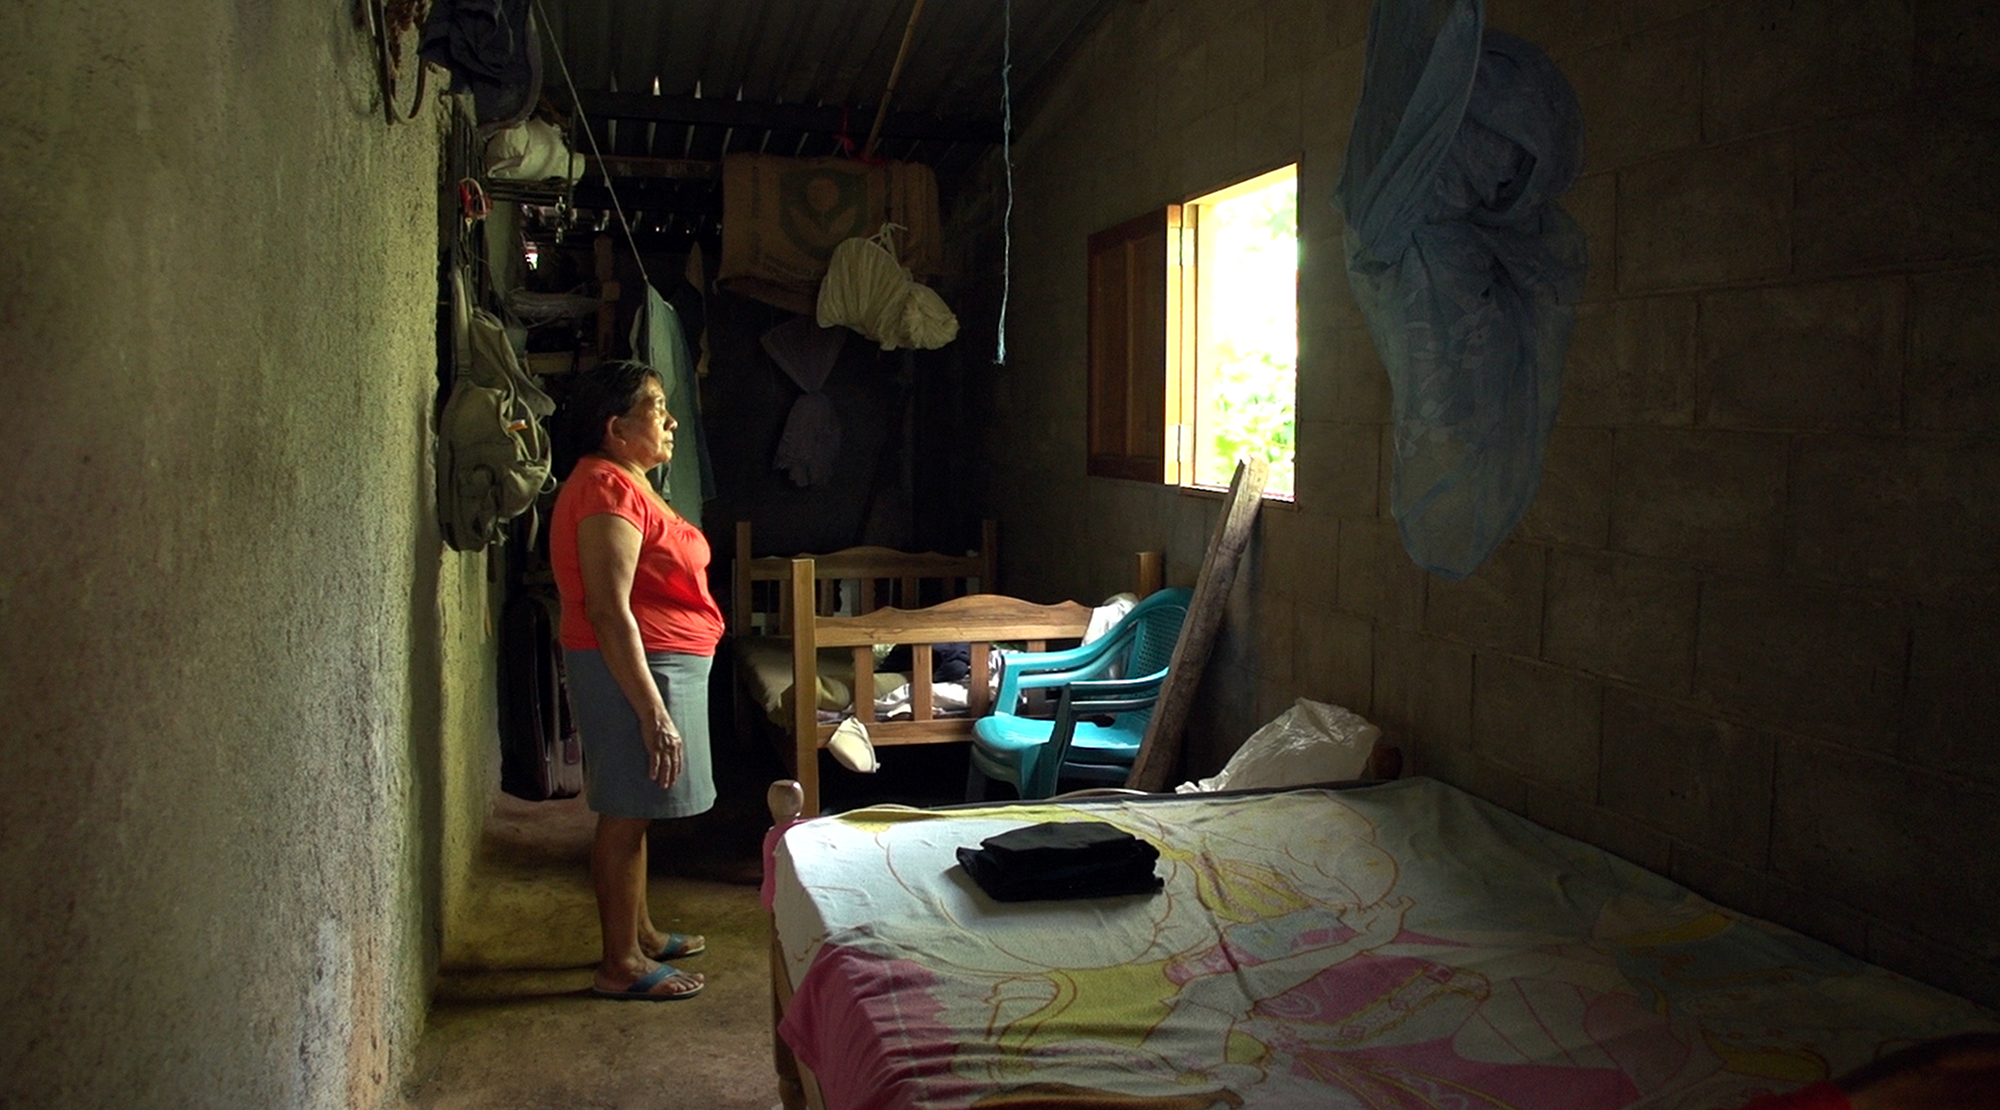 """Marìa Sánchez mother of Teodora Vásquez stands in her daughter's room. Teodora is one of Las 17 group of women sentenced for aggravated himicide out of suspicion of having had an abortion. In 2008, Teodora del Carmen Vásquez was sentenced to 30 years in prison for """"aggravated homicide"""" after suffering a still-birth at work. Teodora, mother of an 11-year-old boy, was expecting a new baby when she started experiencing increasingly severe pain. She called the emergency services but her waters broke soon afterwards. She went into labour, and was unconscious when she gave birth. When she came round, bleeding profusely, her baby was dead. Police at the scene handcuffed her and arrested her on suspicion of murder. Only then did they take her to hospital where she could get the urgent treatment she needed. In El Salvador, women who miscarry or suffer a still-birth during pregnancy are routinely suspected of having had an """"abortion"""". Abortion under any circumstance is a crime, even in cases of rape, incest, or where a woman's life is at risk. This makes women afraid to seek help with pregnancy-related problems, leading inevitably to more preventable deaths."""